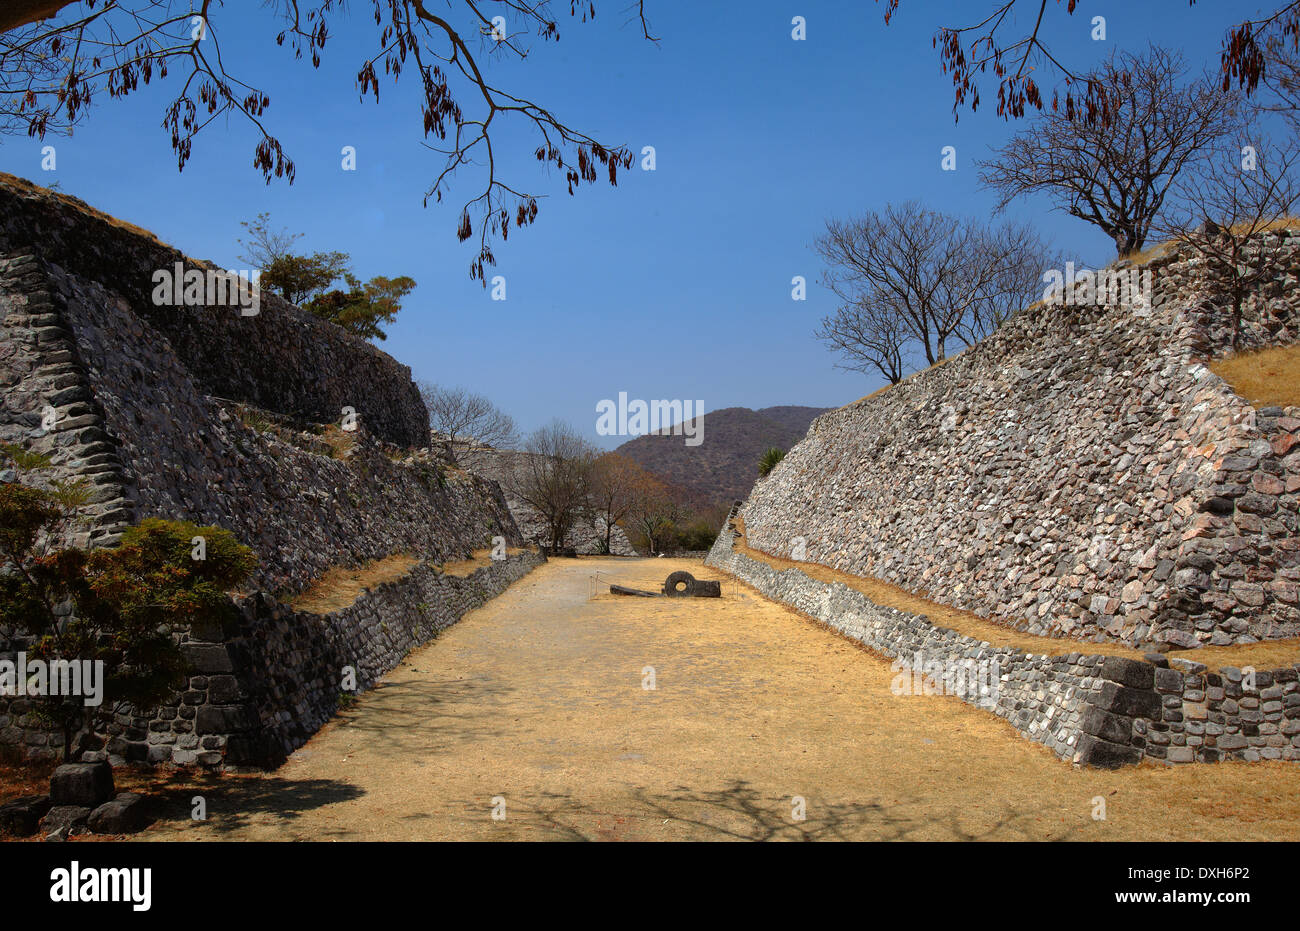 América, Mexico, Morelos state, Xochitepec village, archeological site of Xochicalco, the ballcourt - Stock Image